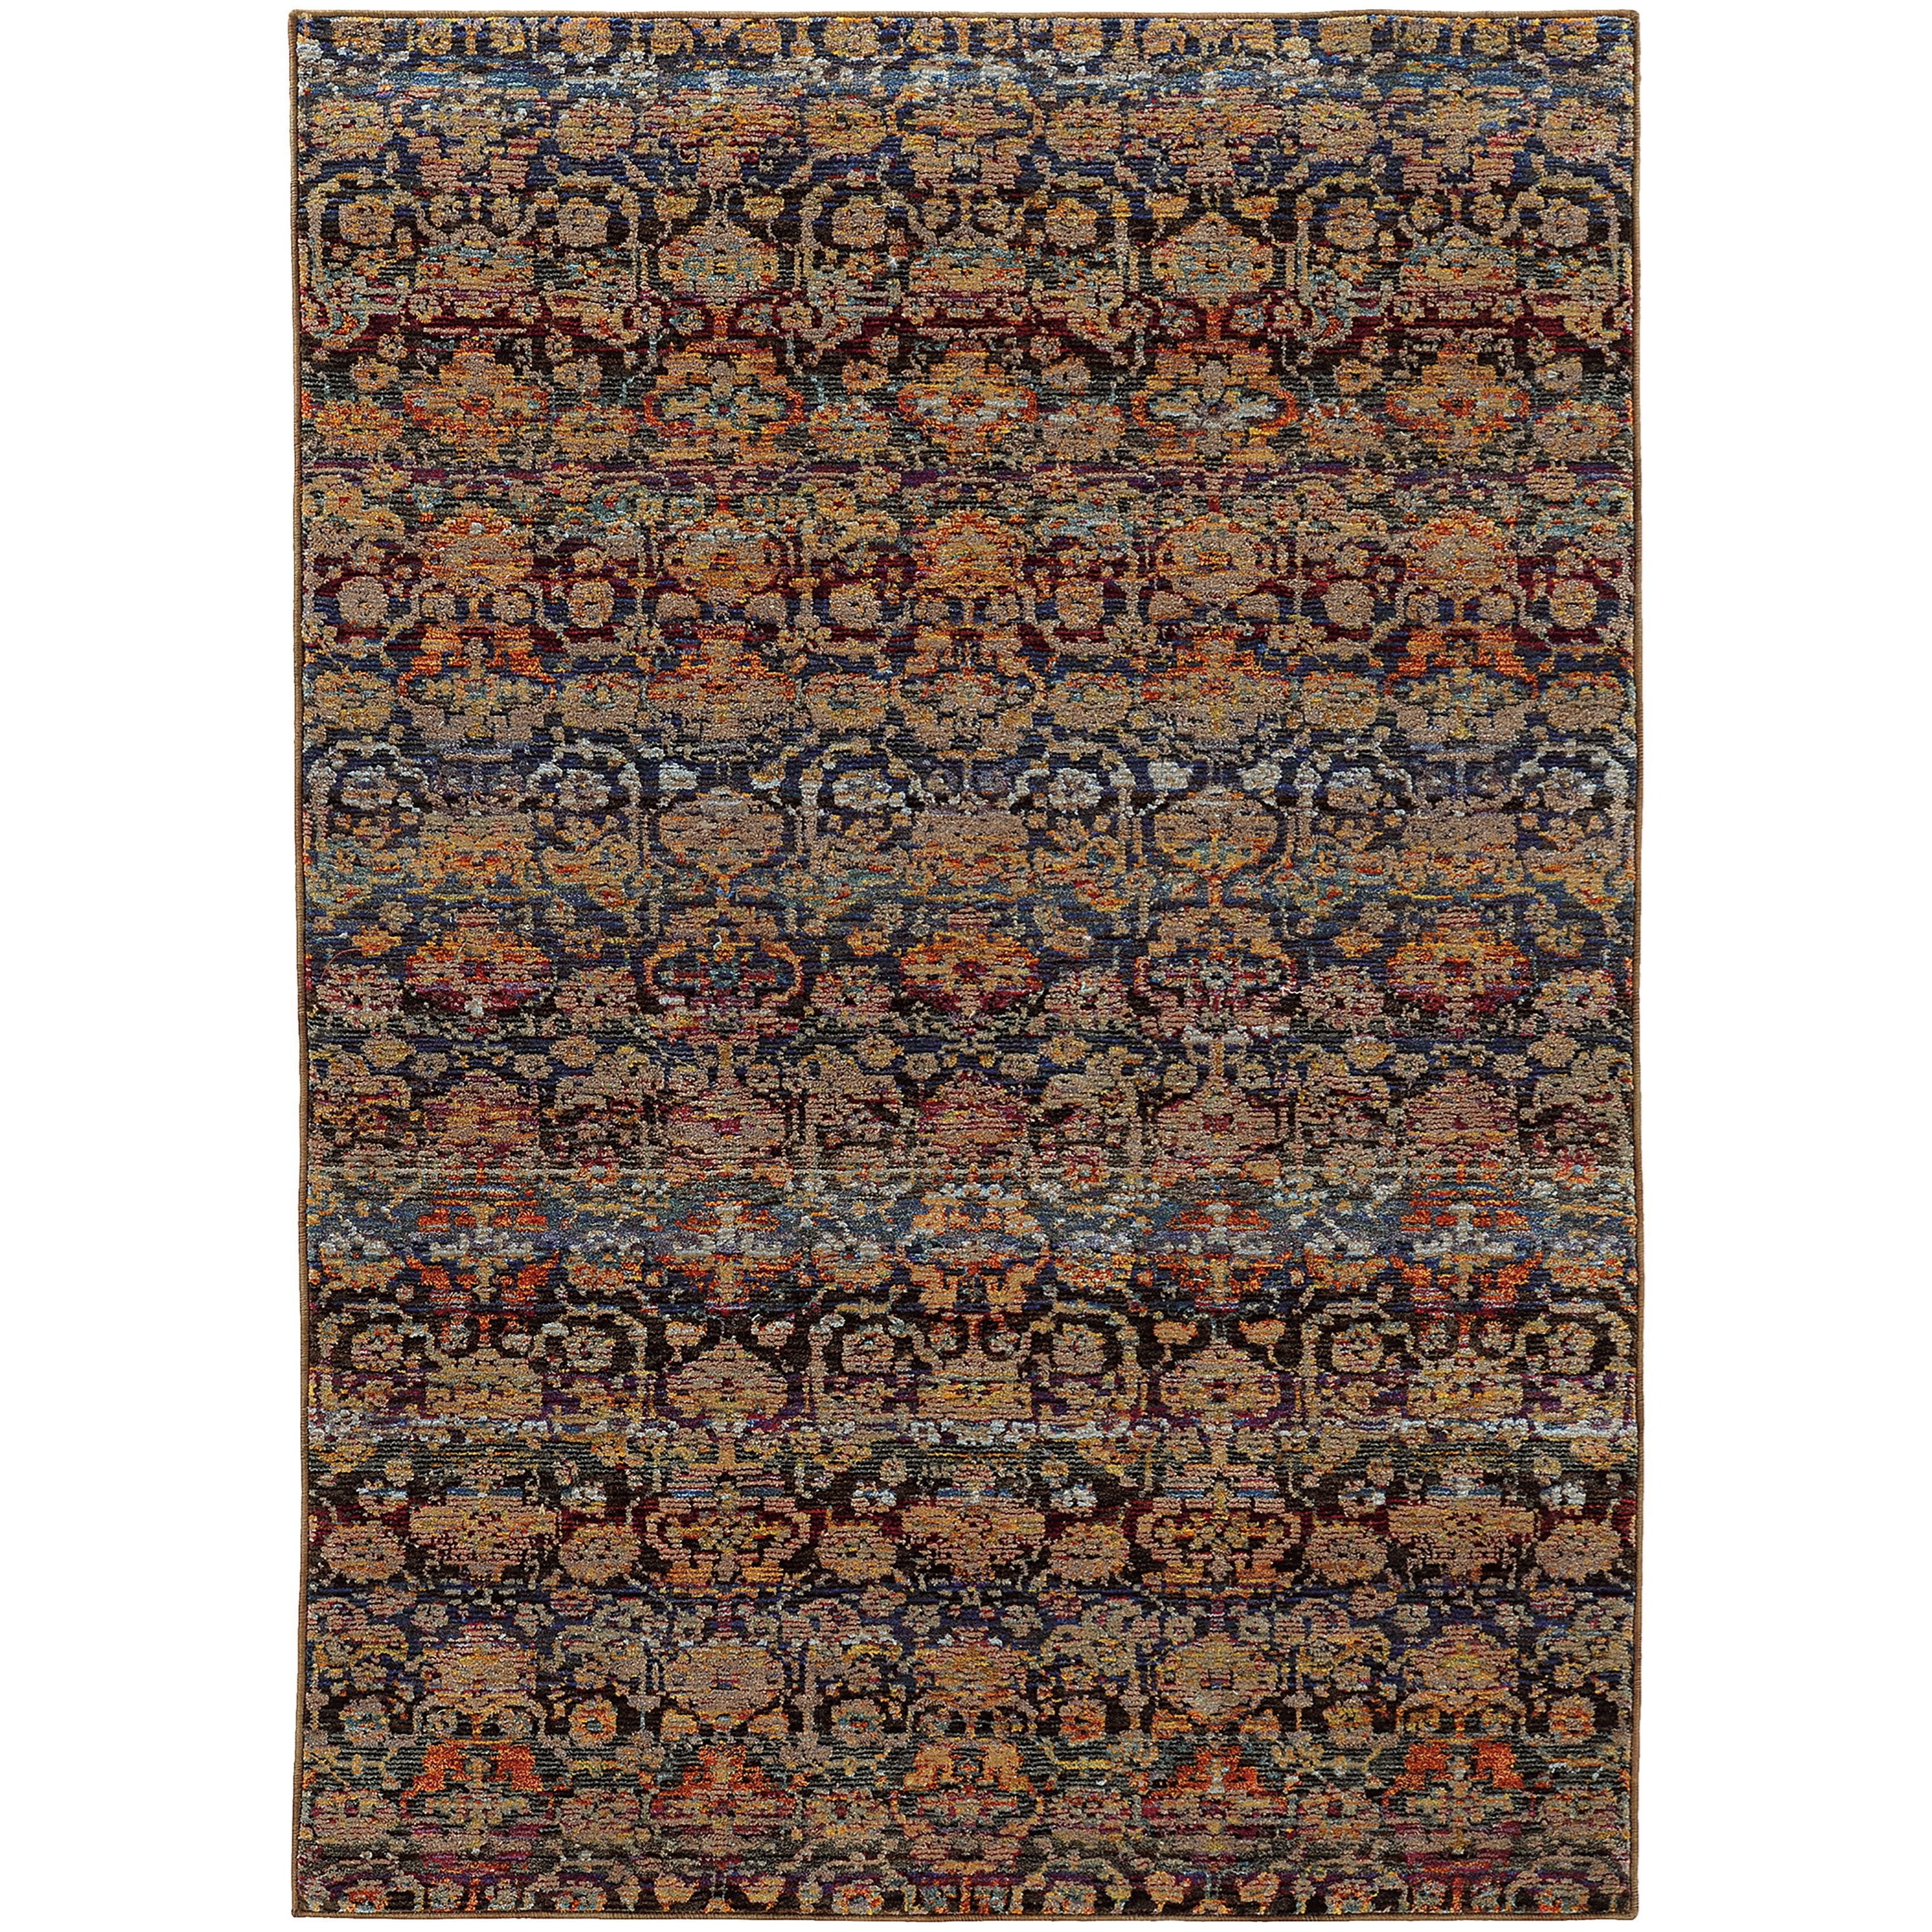 """Andorra 7'10"""" X 10'10"""" Casual Multi/ Blue Rectangle  by Oriental Weavers at Steger's Furniture"""